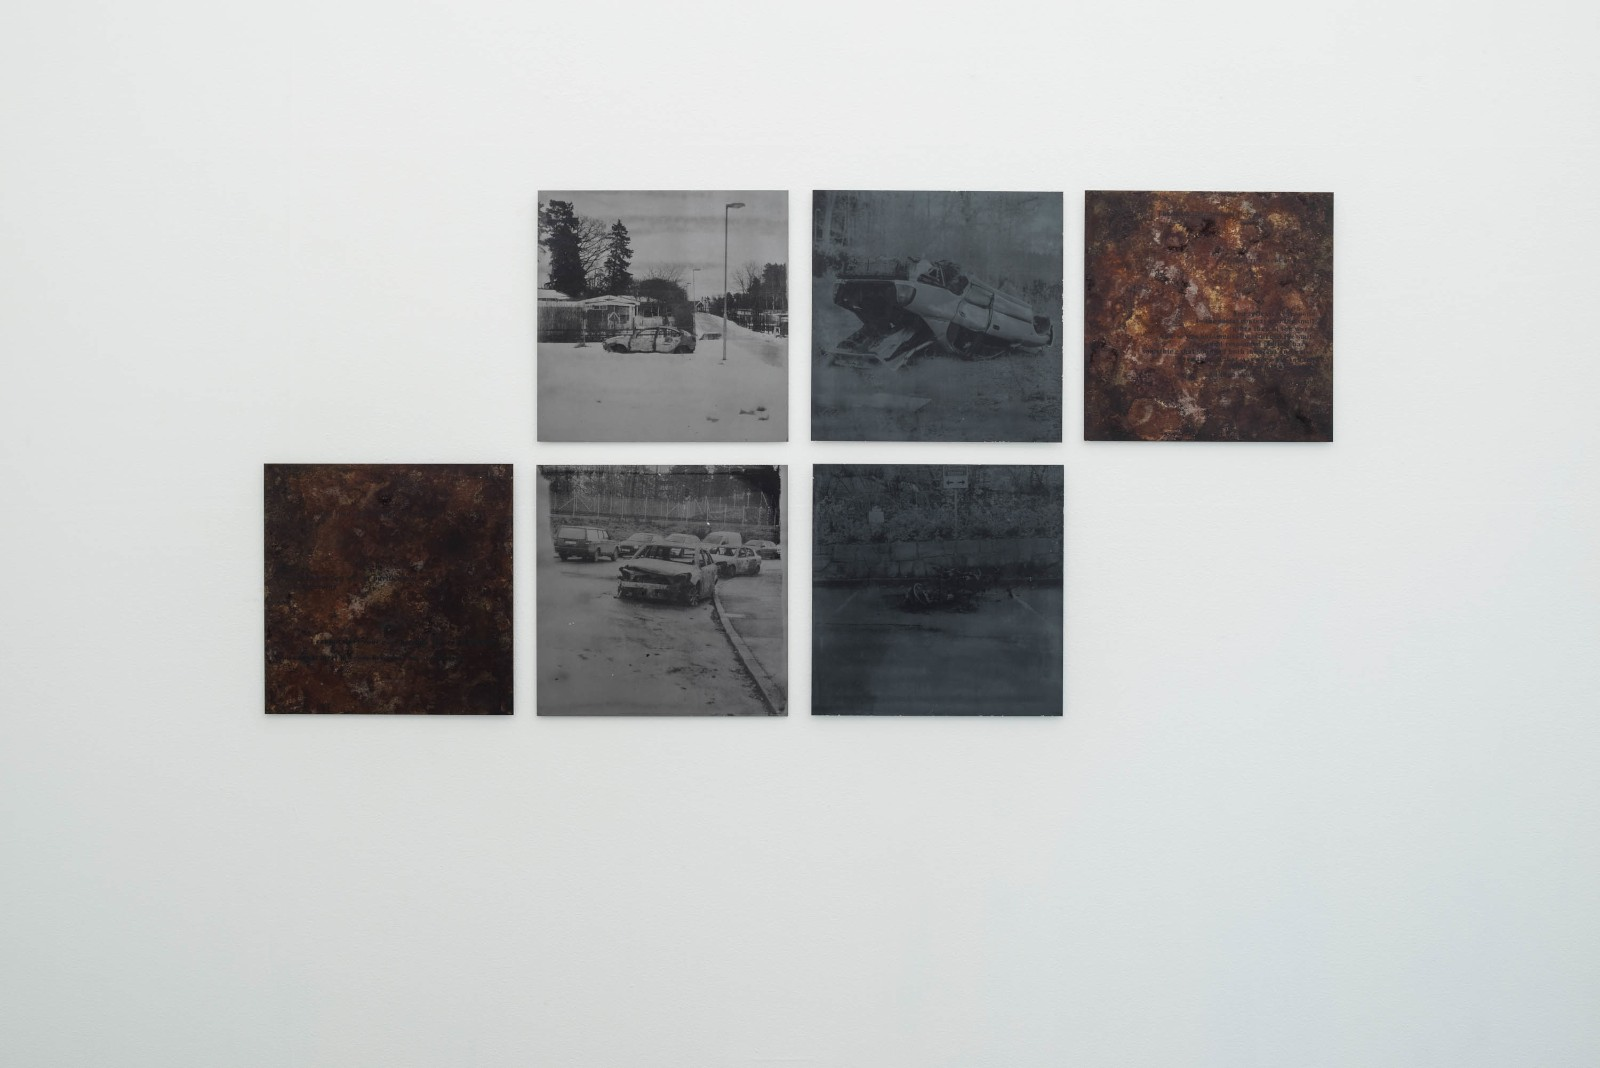 Jasmin Daryani (Born 1988 in Teheran, Iran. Lives and works in Stockholm). Where do we go from here? 2015, silkscreen on metal, 50 x 50 cmDuring 2015, Daryani documented burned-out cars in different residential areas in Stockholm. These works are part of a larger series of images.